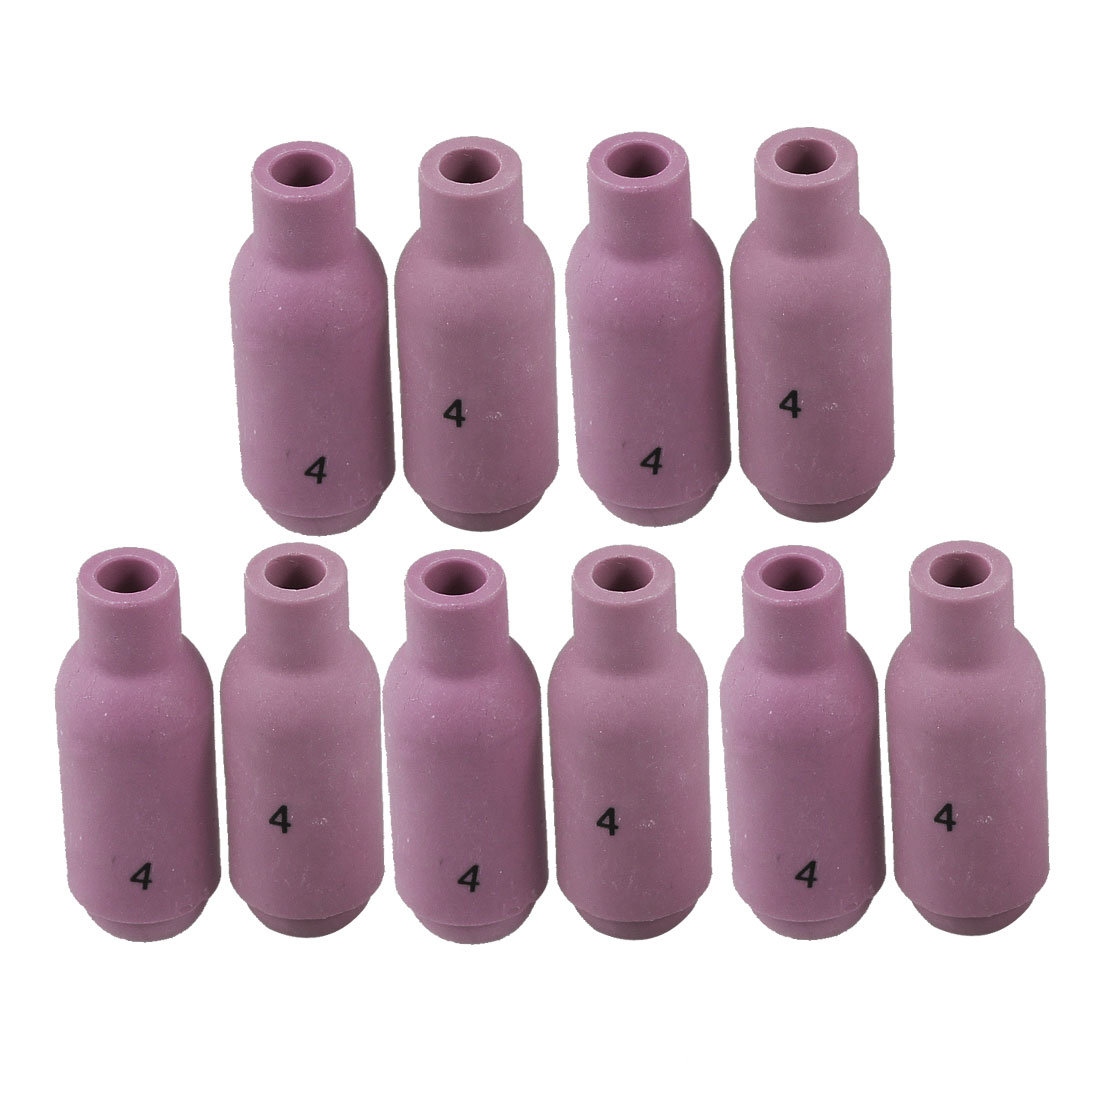 10 Pcs TIG Welding Torch Alumina Ceramic Cup Nozzles 10N50 #4 for Torch WP17 WP18 WP26